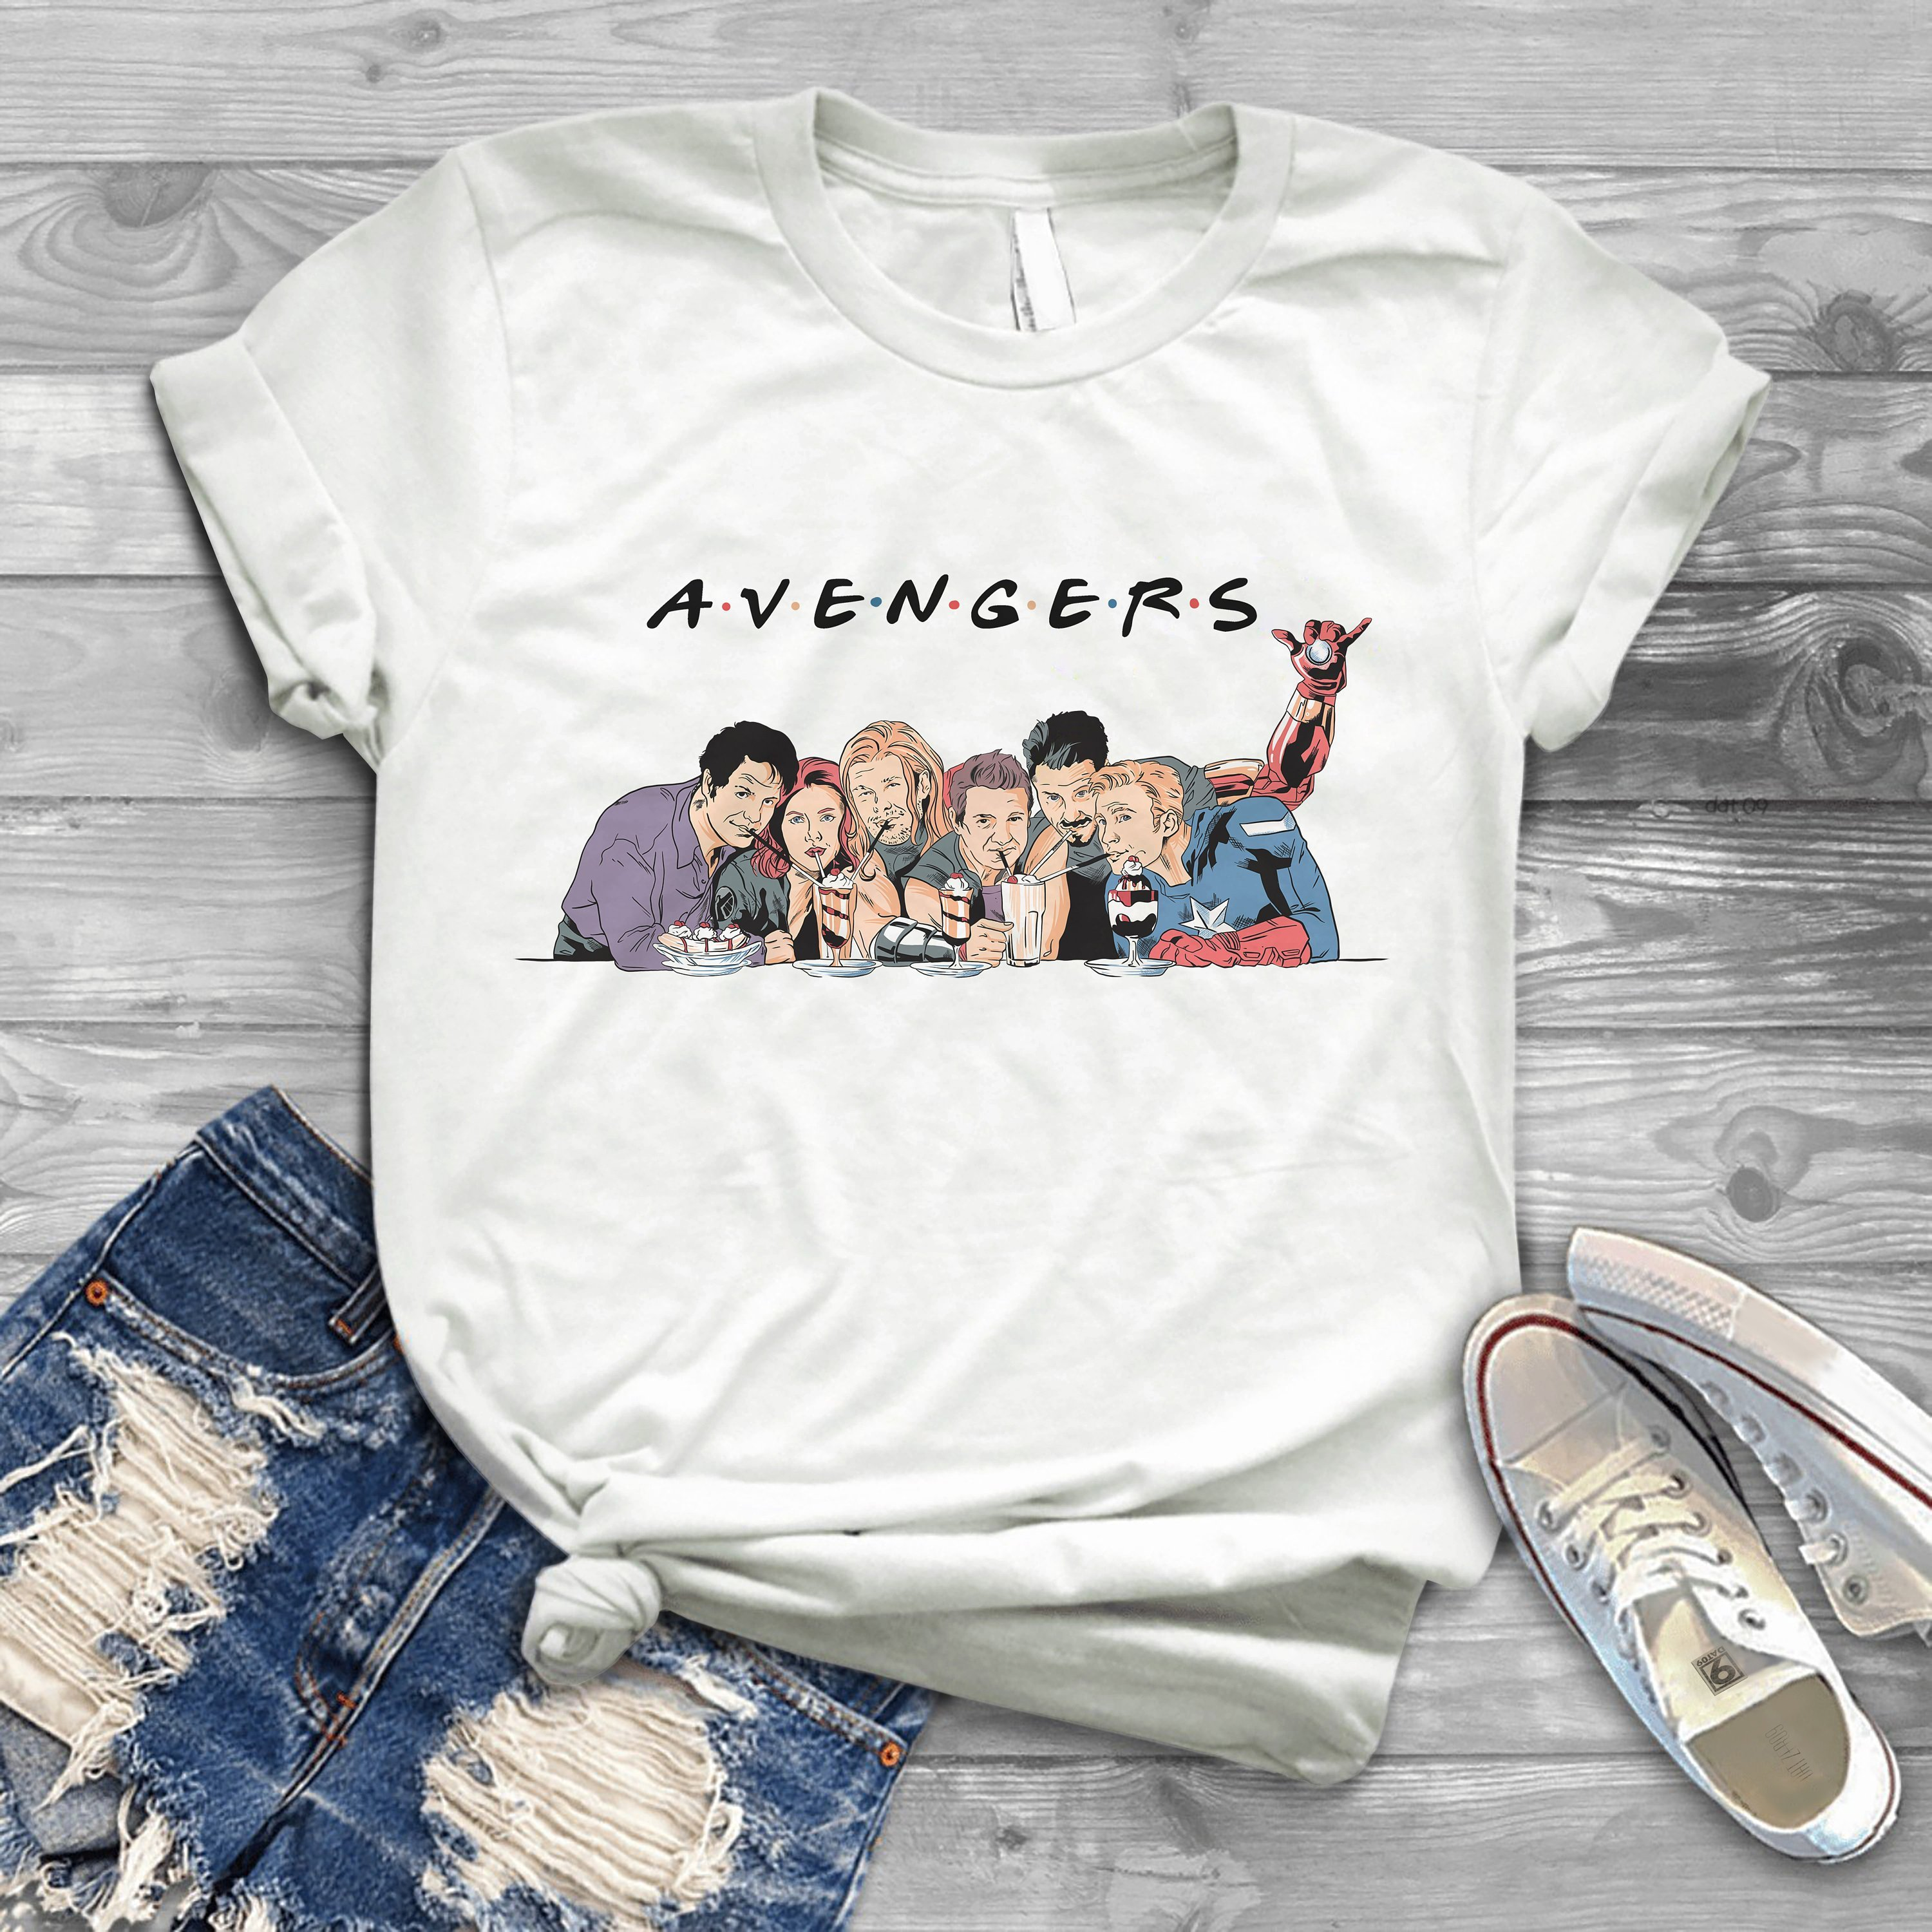 2019 New Summer Avengers Superheroes Shirt Friends Ladies Fit Shirt Funny Graphic End Game T-Shirt image